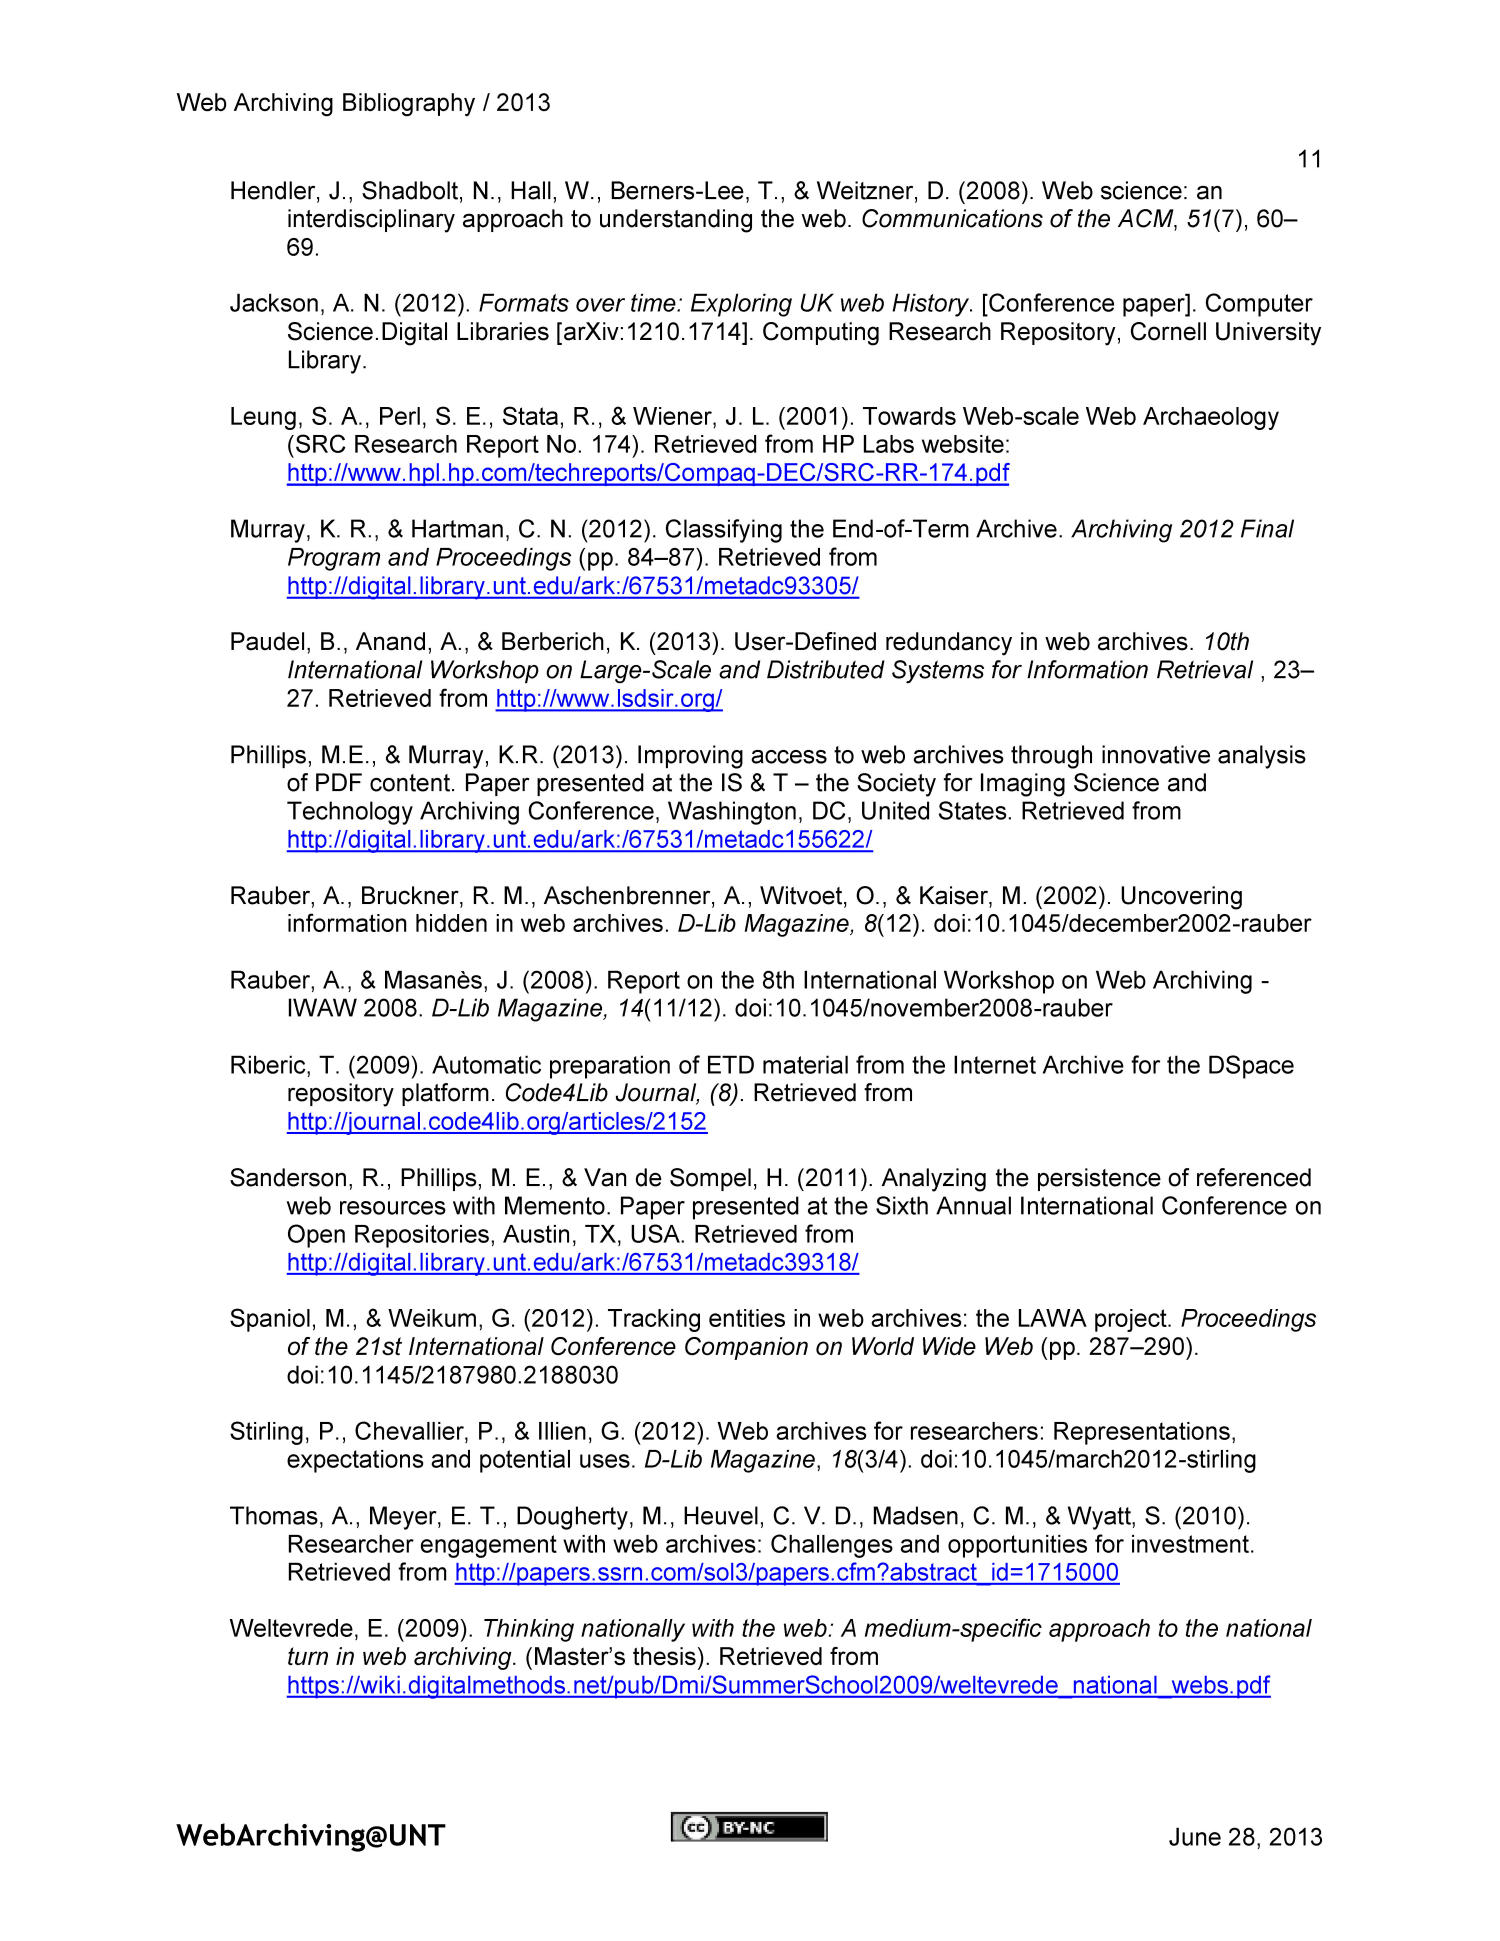 Web Archiving Bibliography 2013 - Page 11 - Digital Library